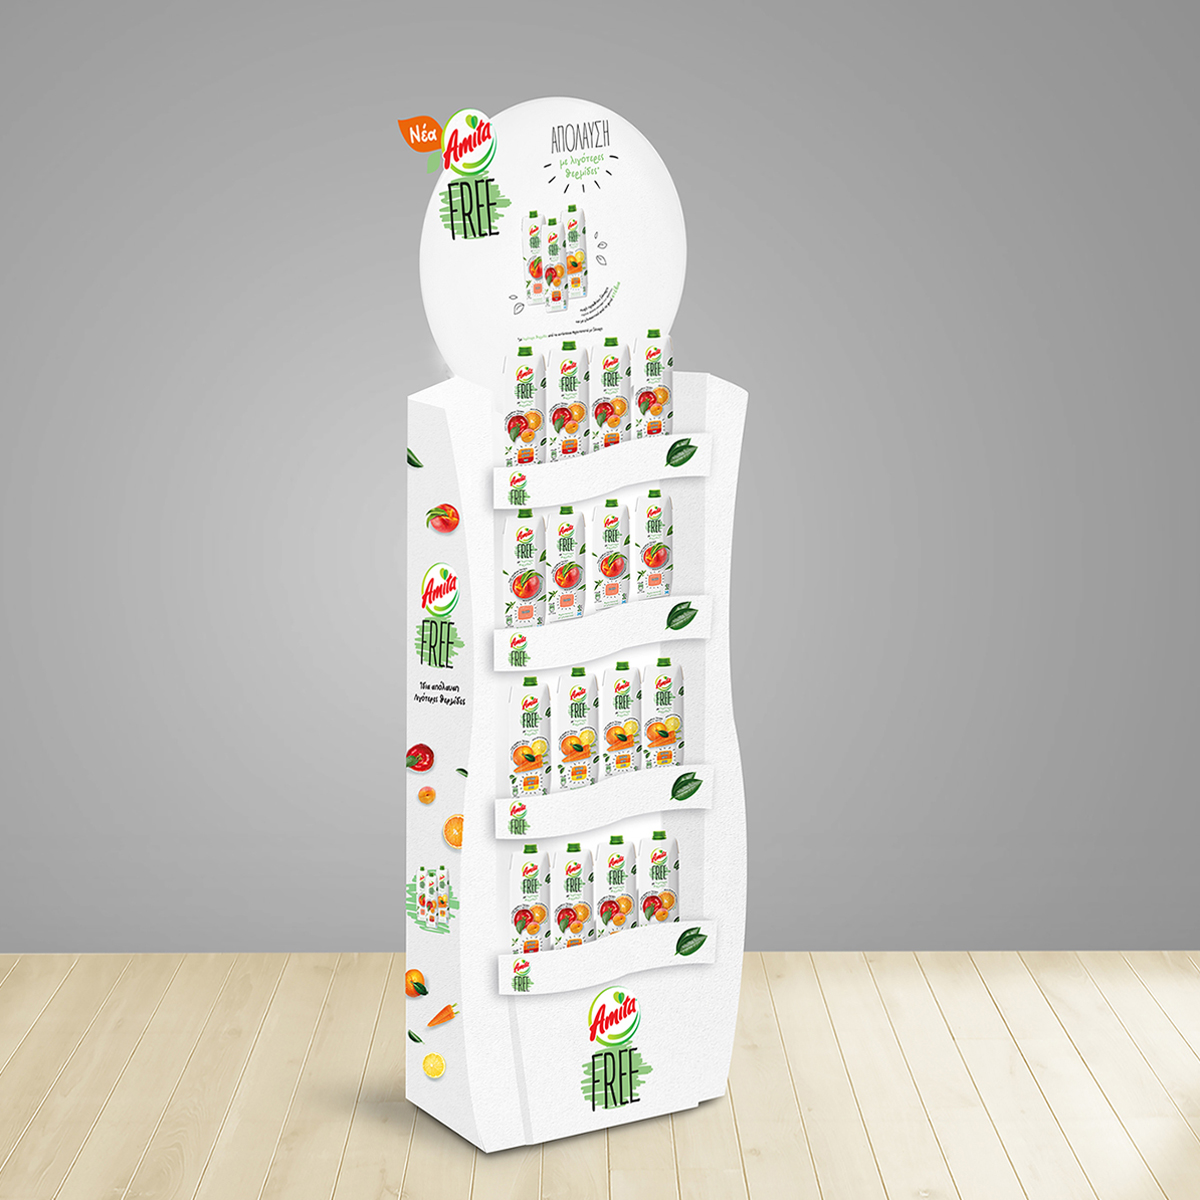 AMITA-FREE-STAND-MOCKUP_fruit_FOR-SITE_2